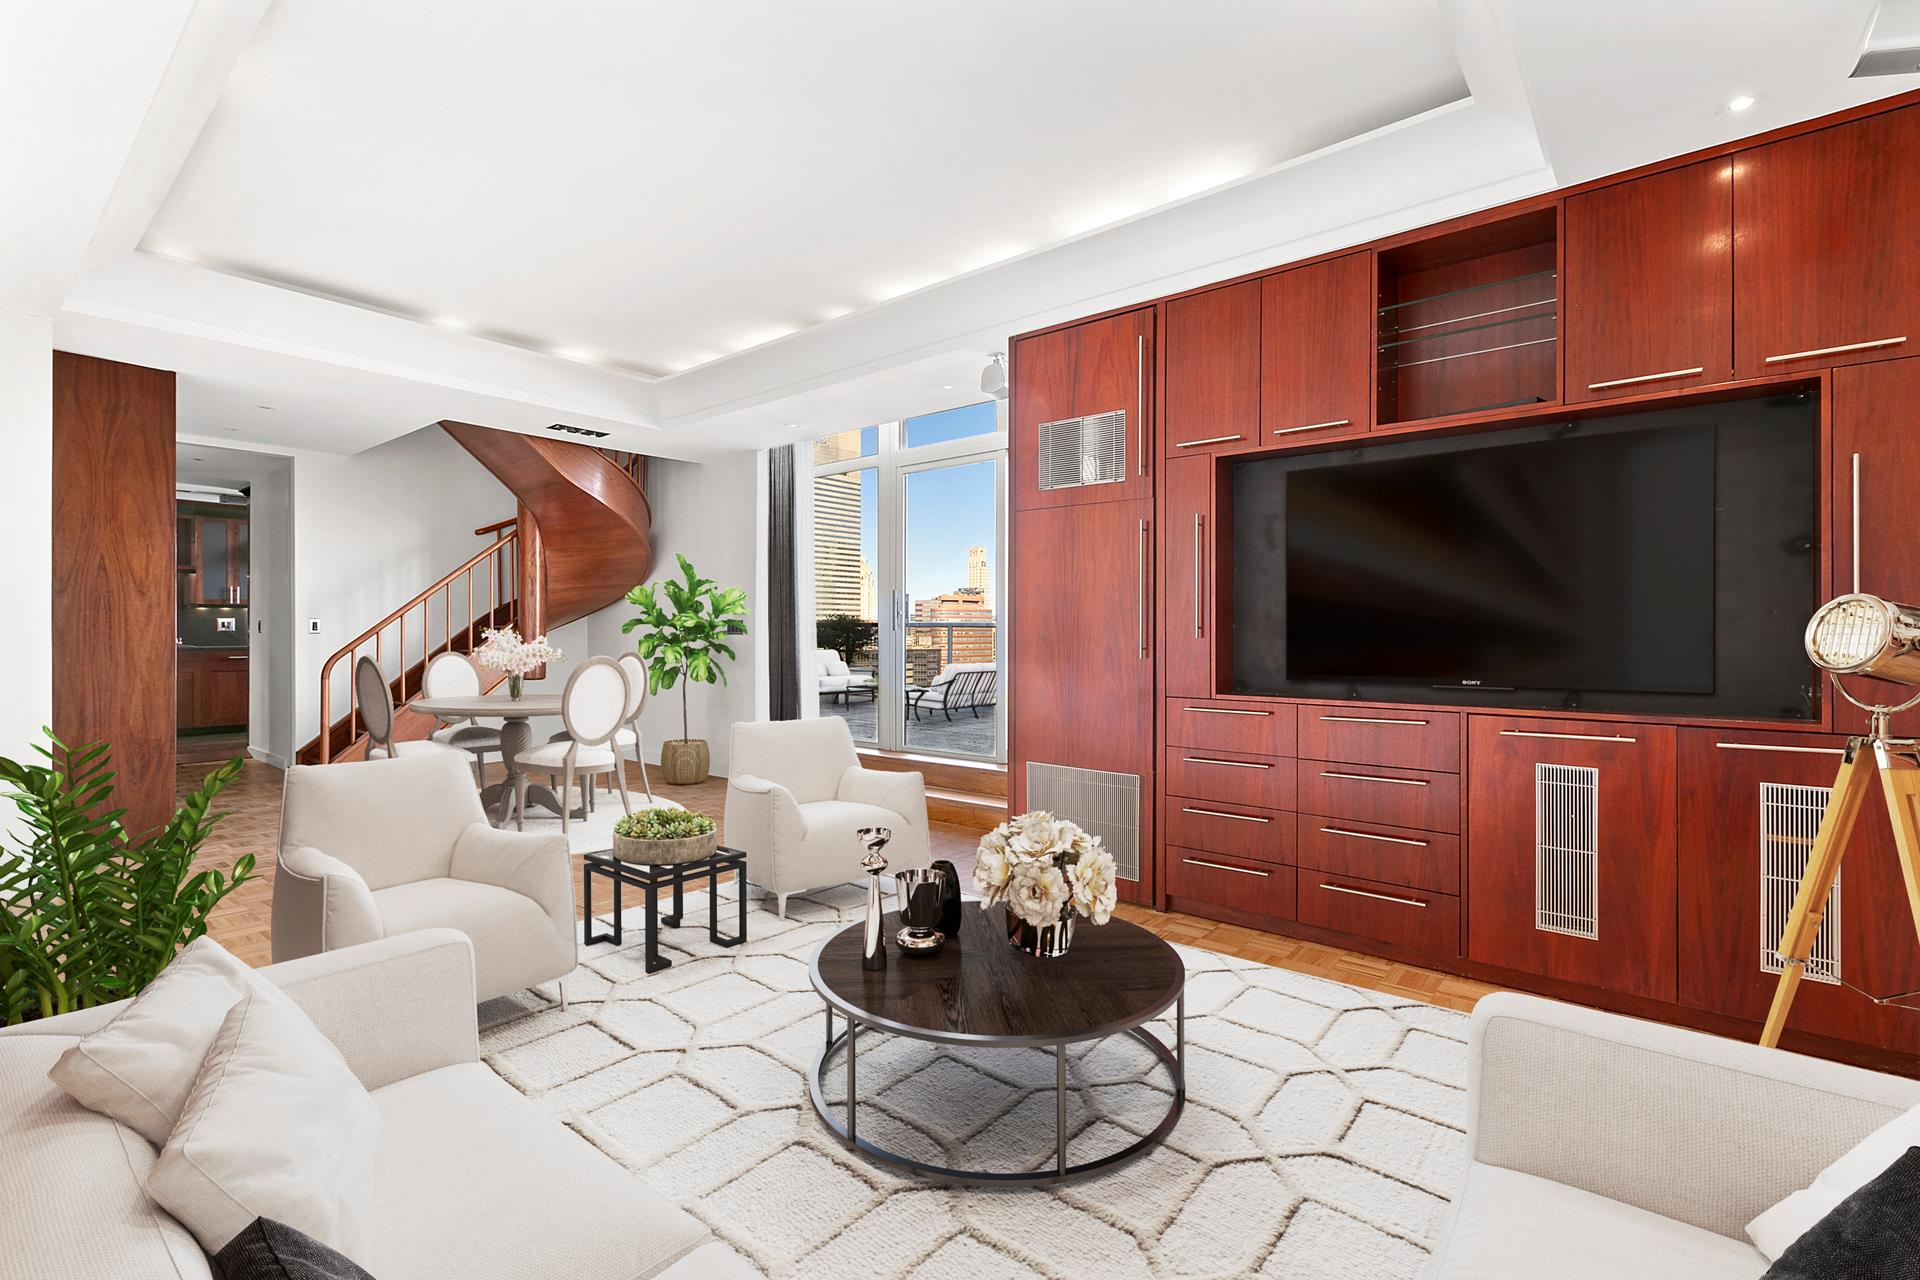 Open House on Saturday 09/19 and Sunday 09/20 from 12-4 BY APPOINTMENT ONLY. This Stunning Mint Condition Duplex Penthouse with spectacular East River, bridge and City views has a private 370 square foot terrace and is perfect for entertaining. No detail has been overlooked and all upgrades are of designer quality. The 44th Floor foyer leads you into a comfortable living room / dining room which has a professional Wine Cooler, access to the huge terrace and a powder room. The State of the Art Kitchen has a window, a breakfast bar and all appliances are Viking-Professional and include an oversized refrigerator, a separate ice-maker and a six burner stove. An impressive staircase takes you to the 45th floor. Both the master & second bedrooms have oversized windows with amazing views of the Manhattan skyline and the East River. The closet space is unique and it includes walk-ins and a wall of shoe closets. The master bathroom has two sinks and both a tub and a shower. The second bath is large and is en-suite to the second bedroom. 100 United Nations Plaza is a White Glove Full Service Building, with a 24/7 concierge & doorman, has an attended Health Club and a conference/party room. Photos are virtually staged.